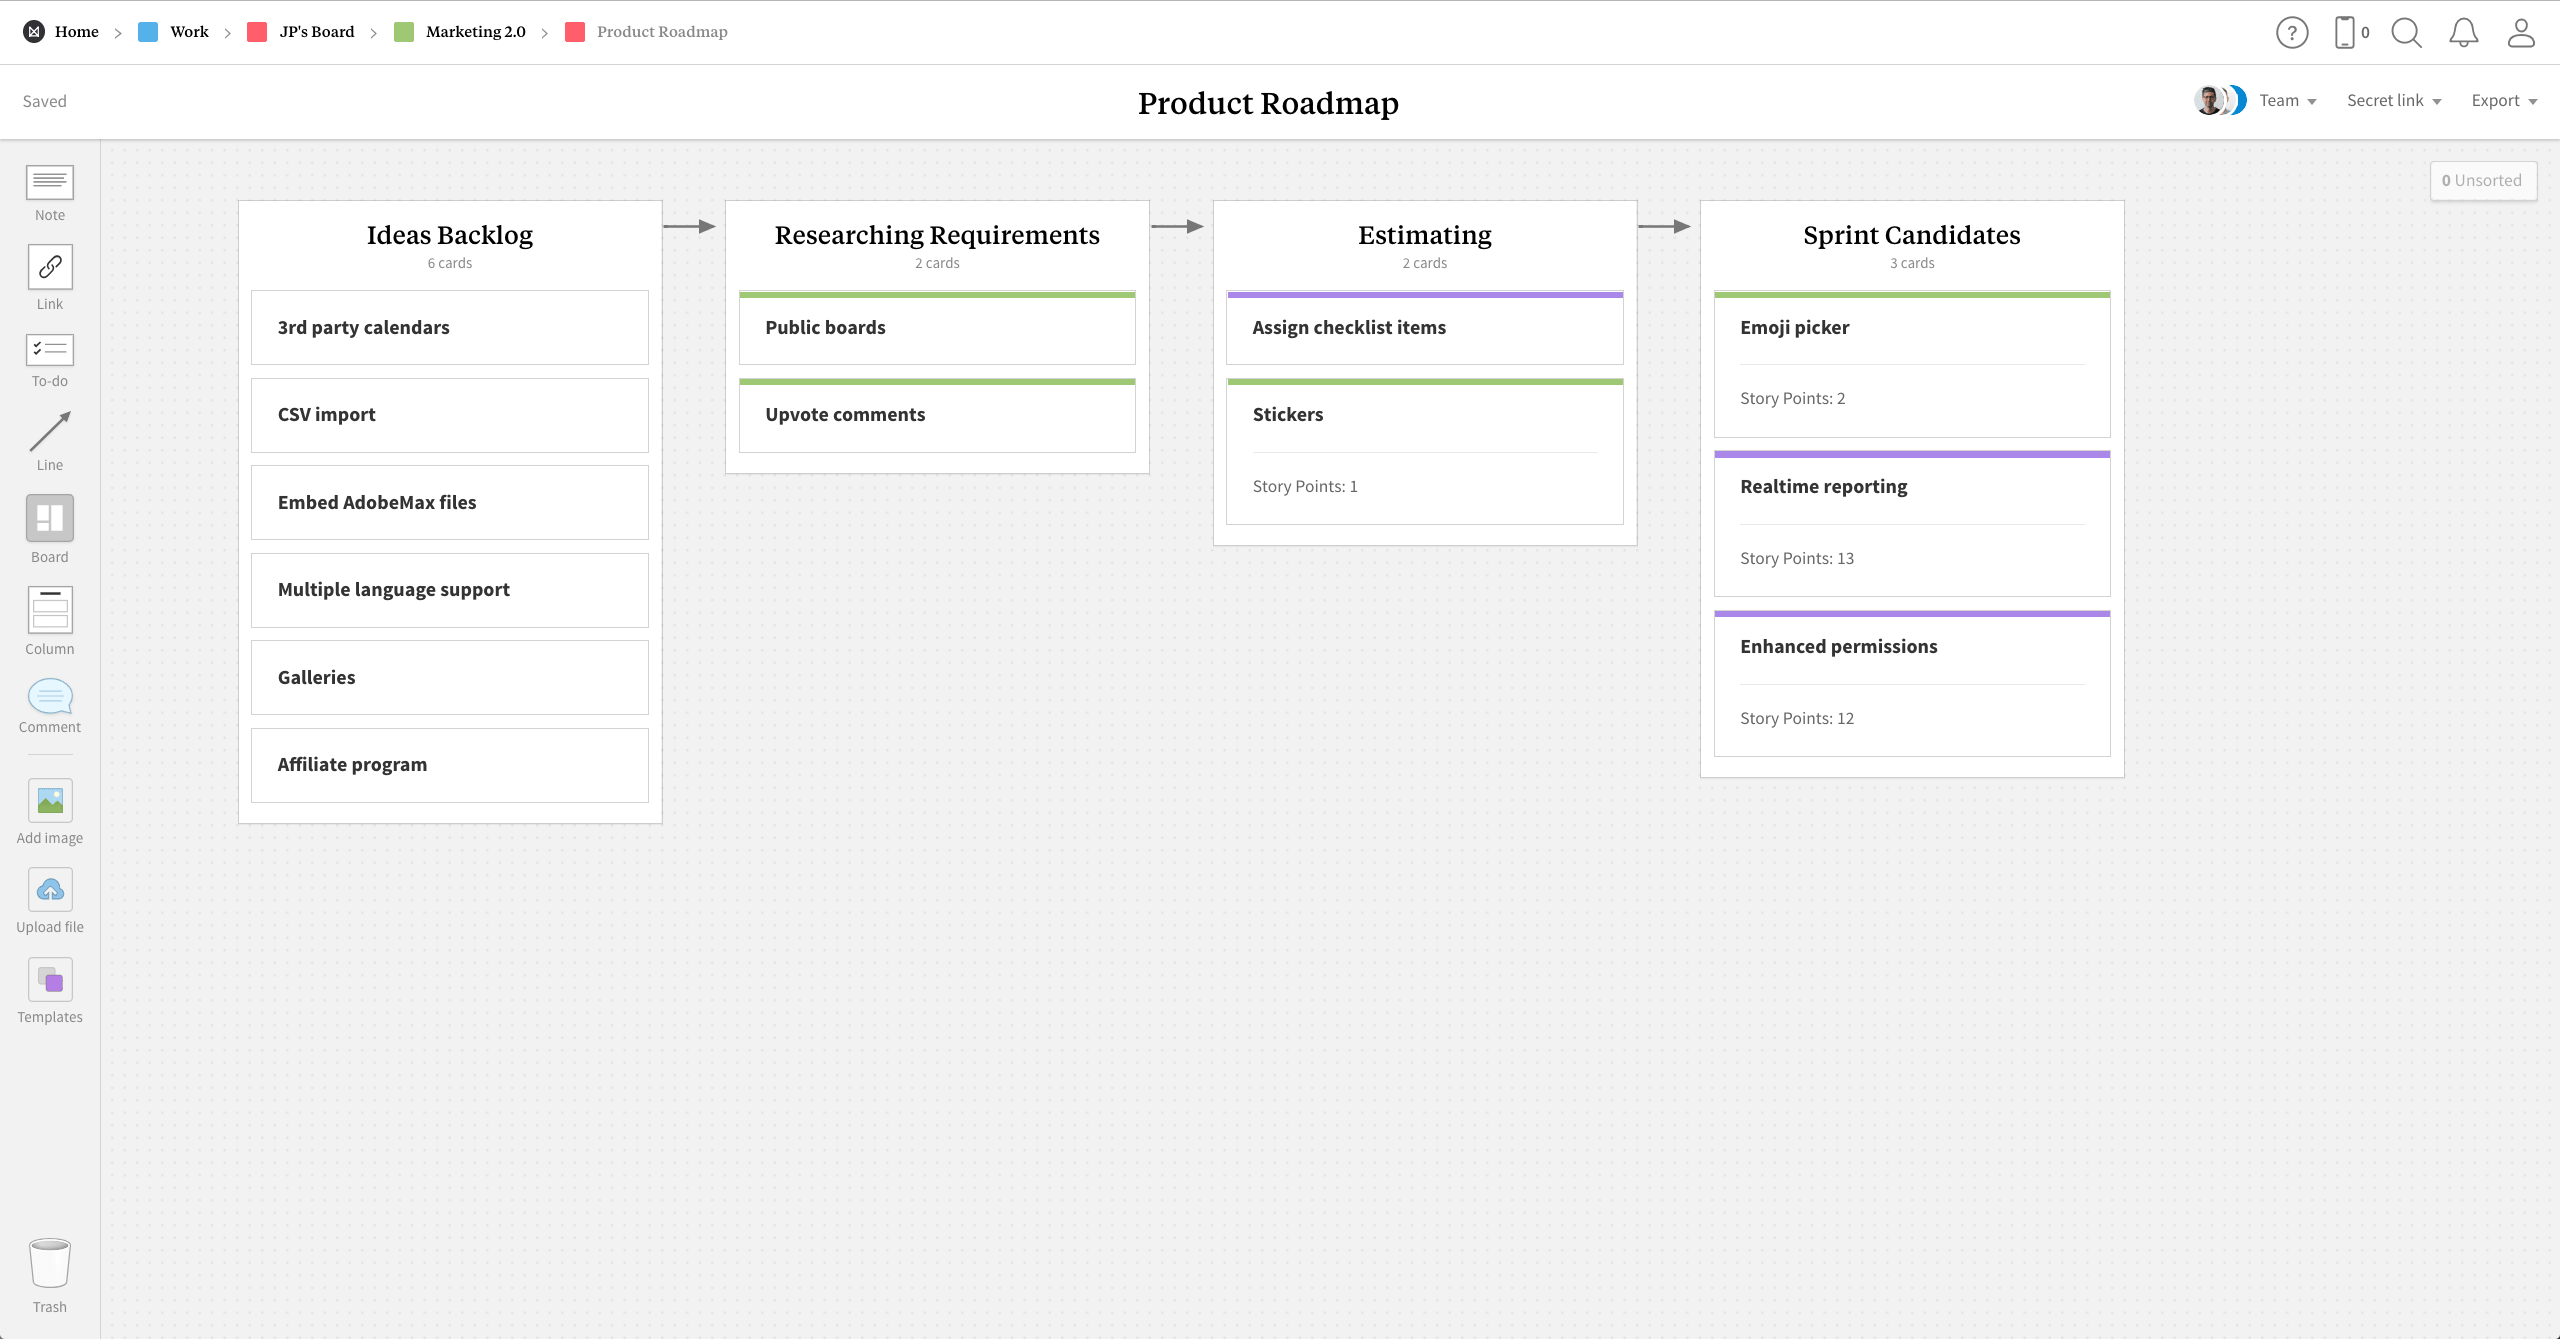 Completed Product Roadmap template in Milanote app